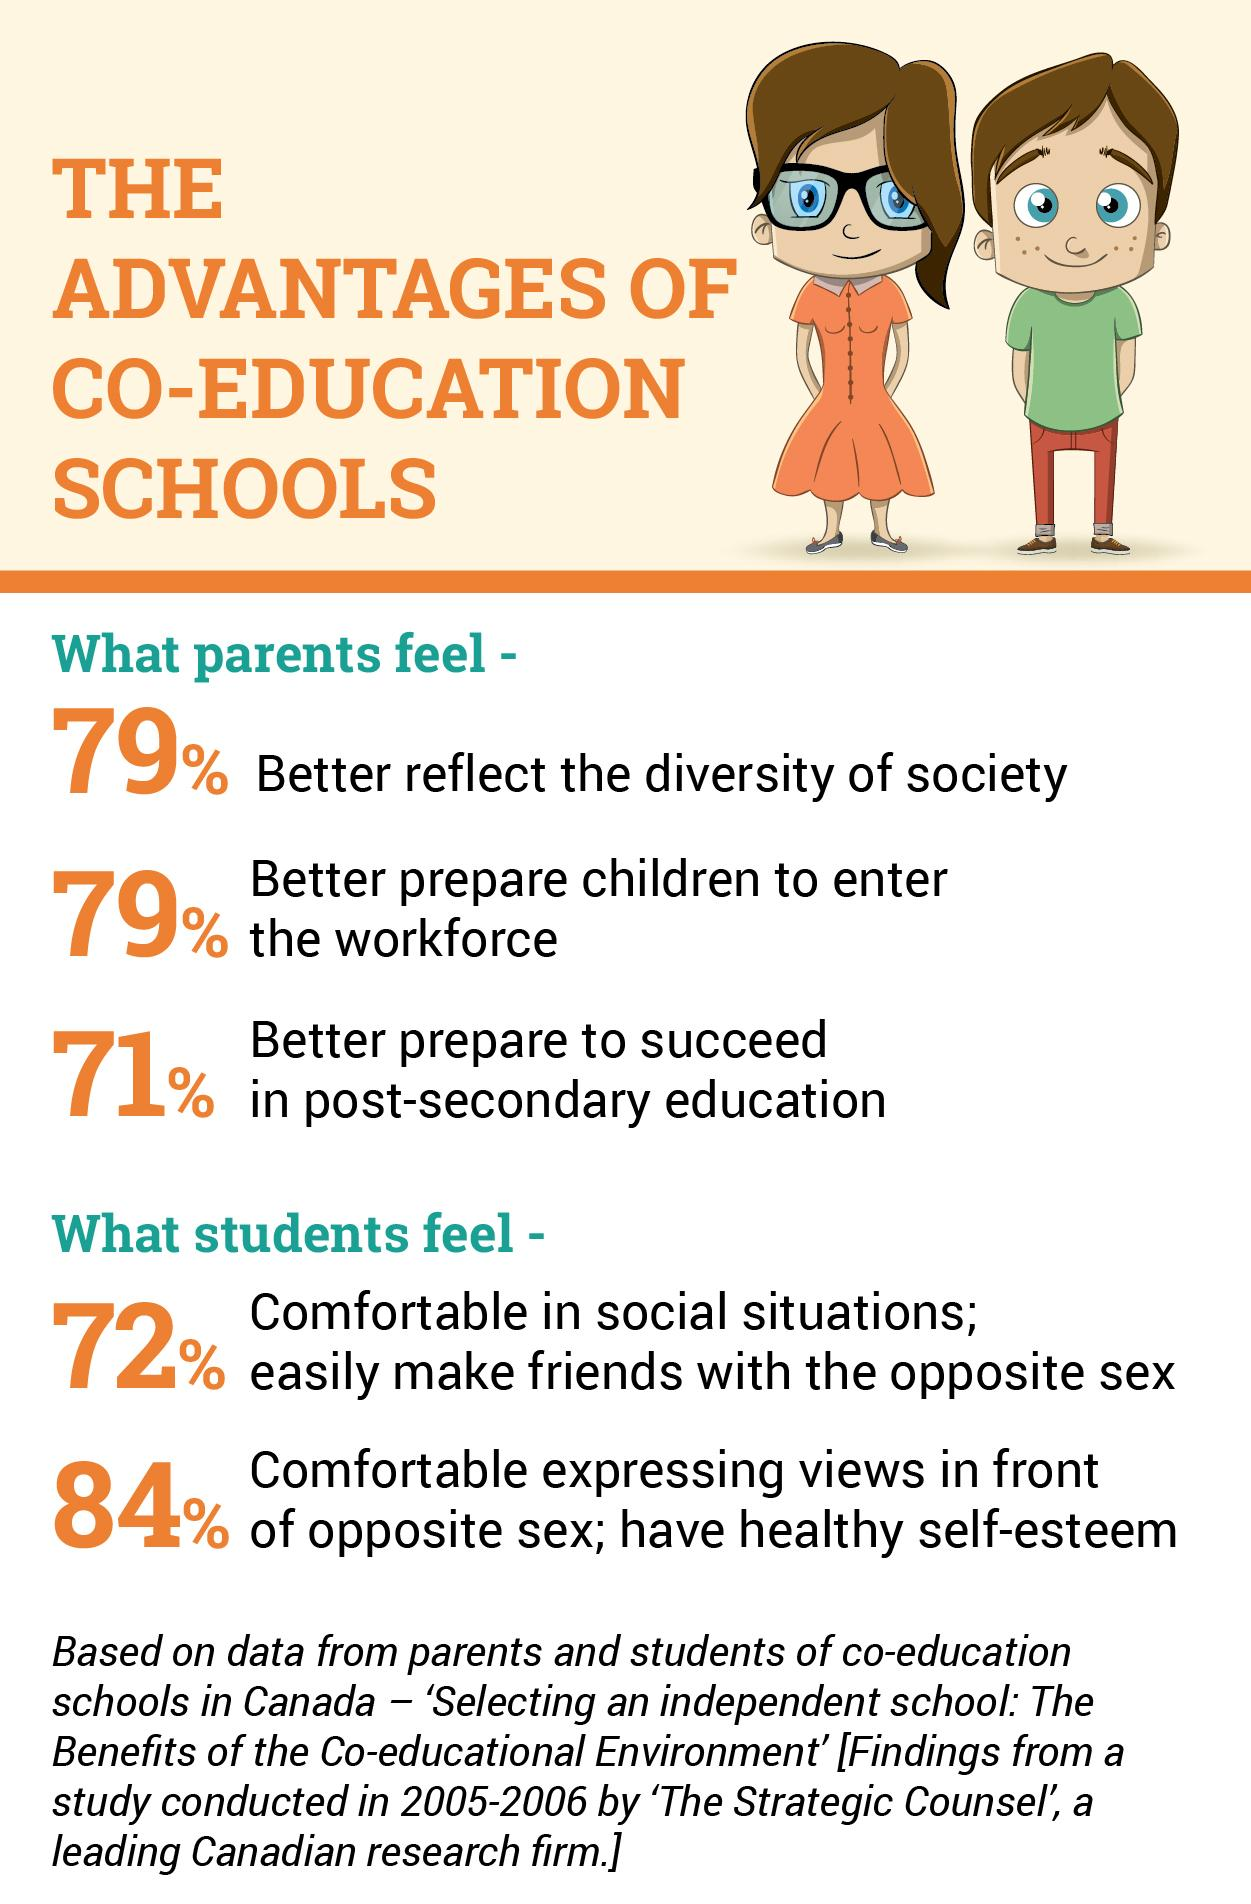 The Role Of Co-Education In Promoting Your Child's Social Intelligence